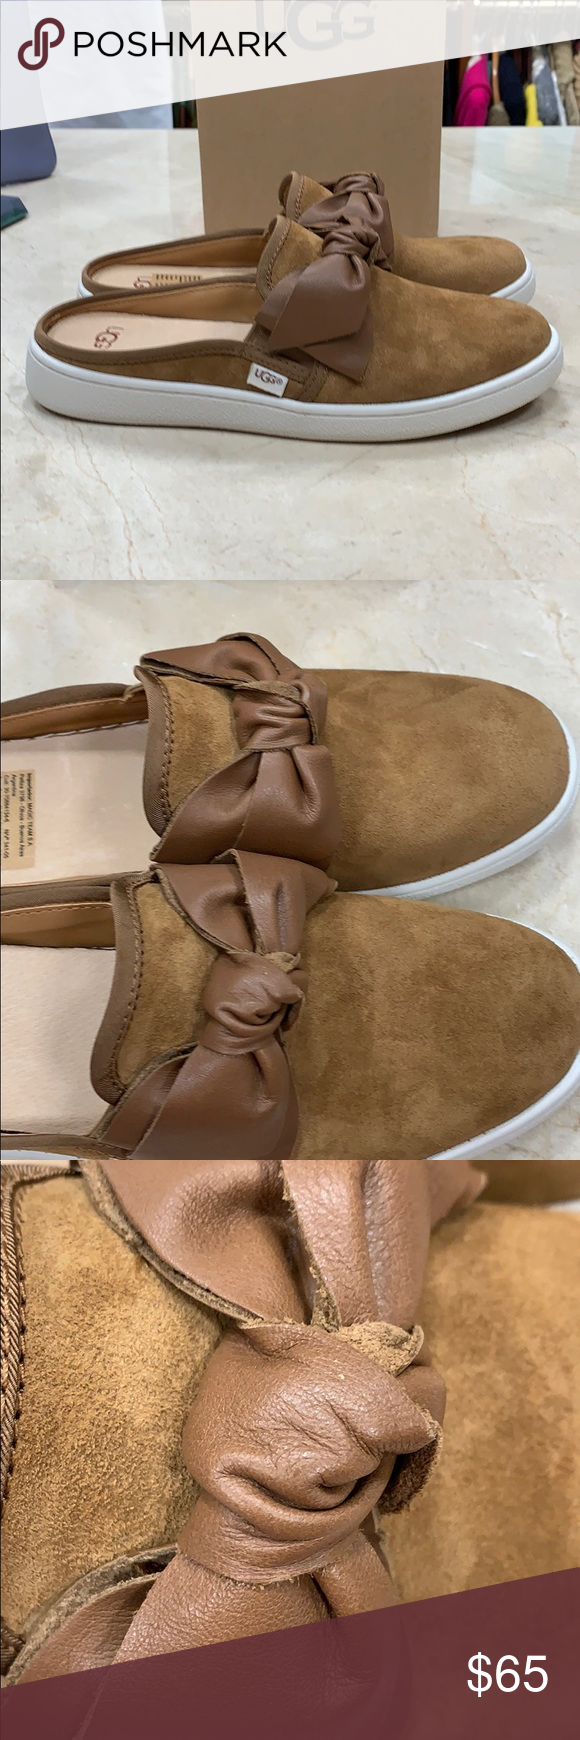 UGG W IDA SLIDE WITH BOW | Uggs, Suede